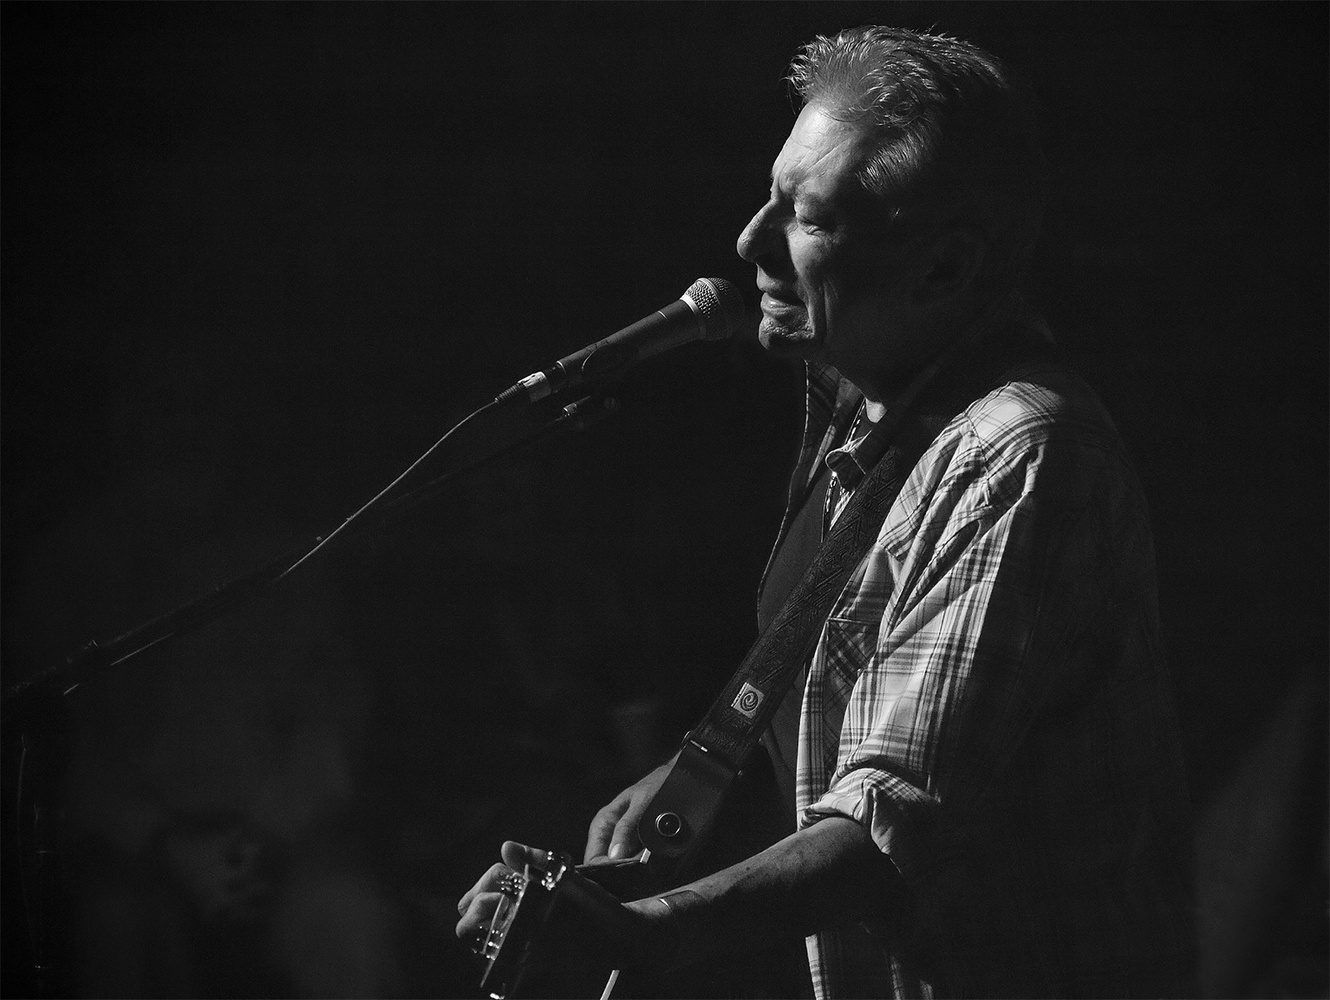 Joe Ely by Dieter Kaupp